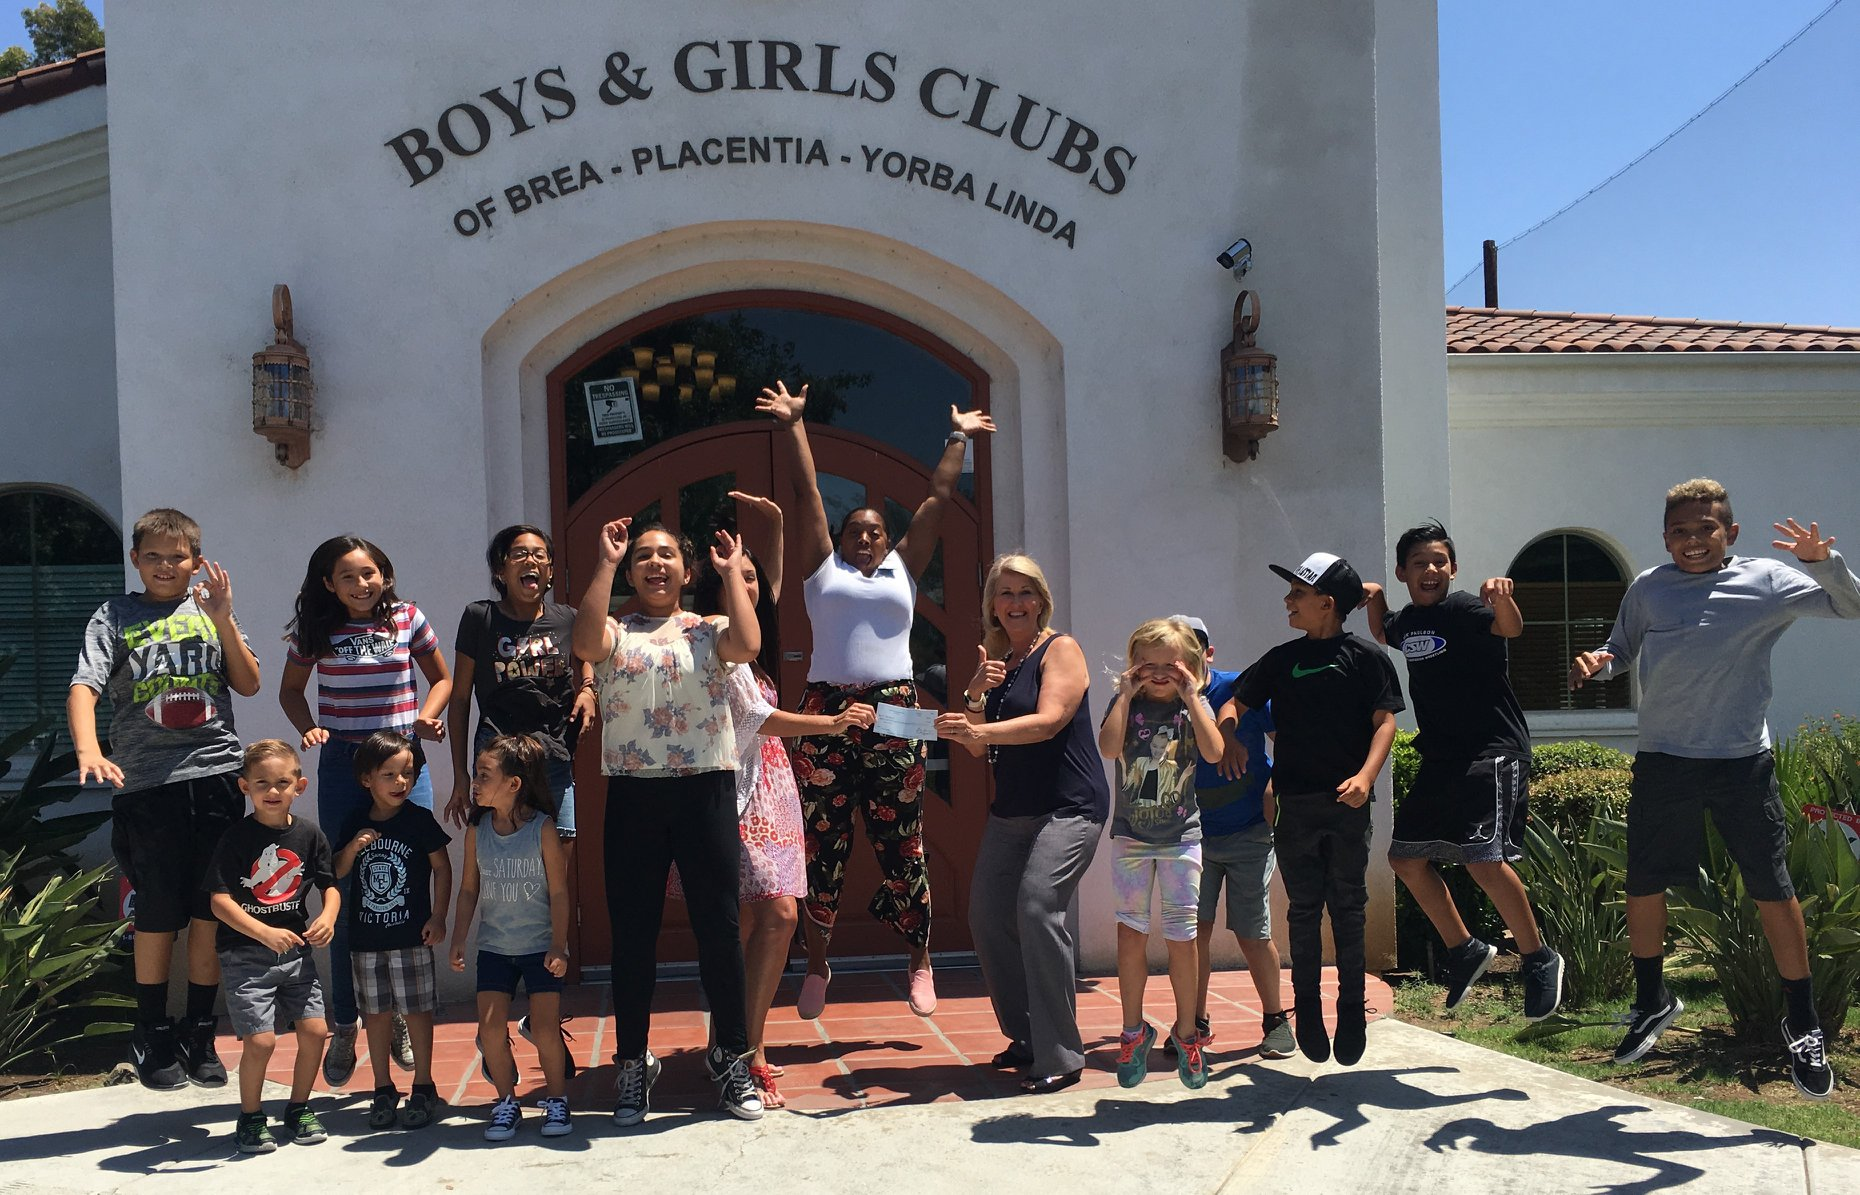 Boys & Girls Club of Brea